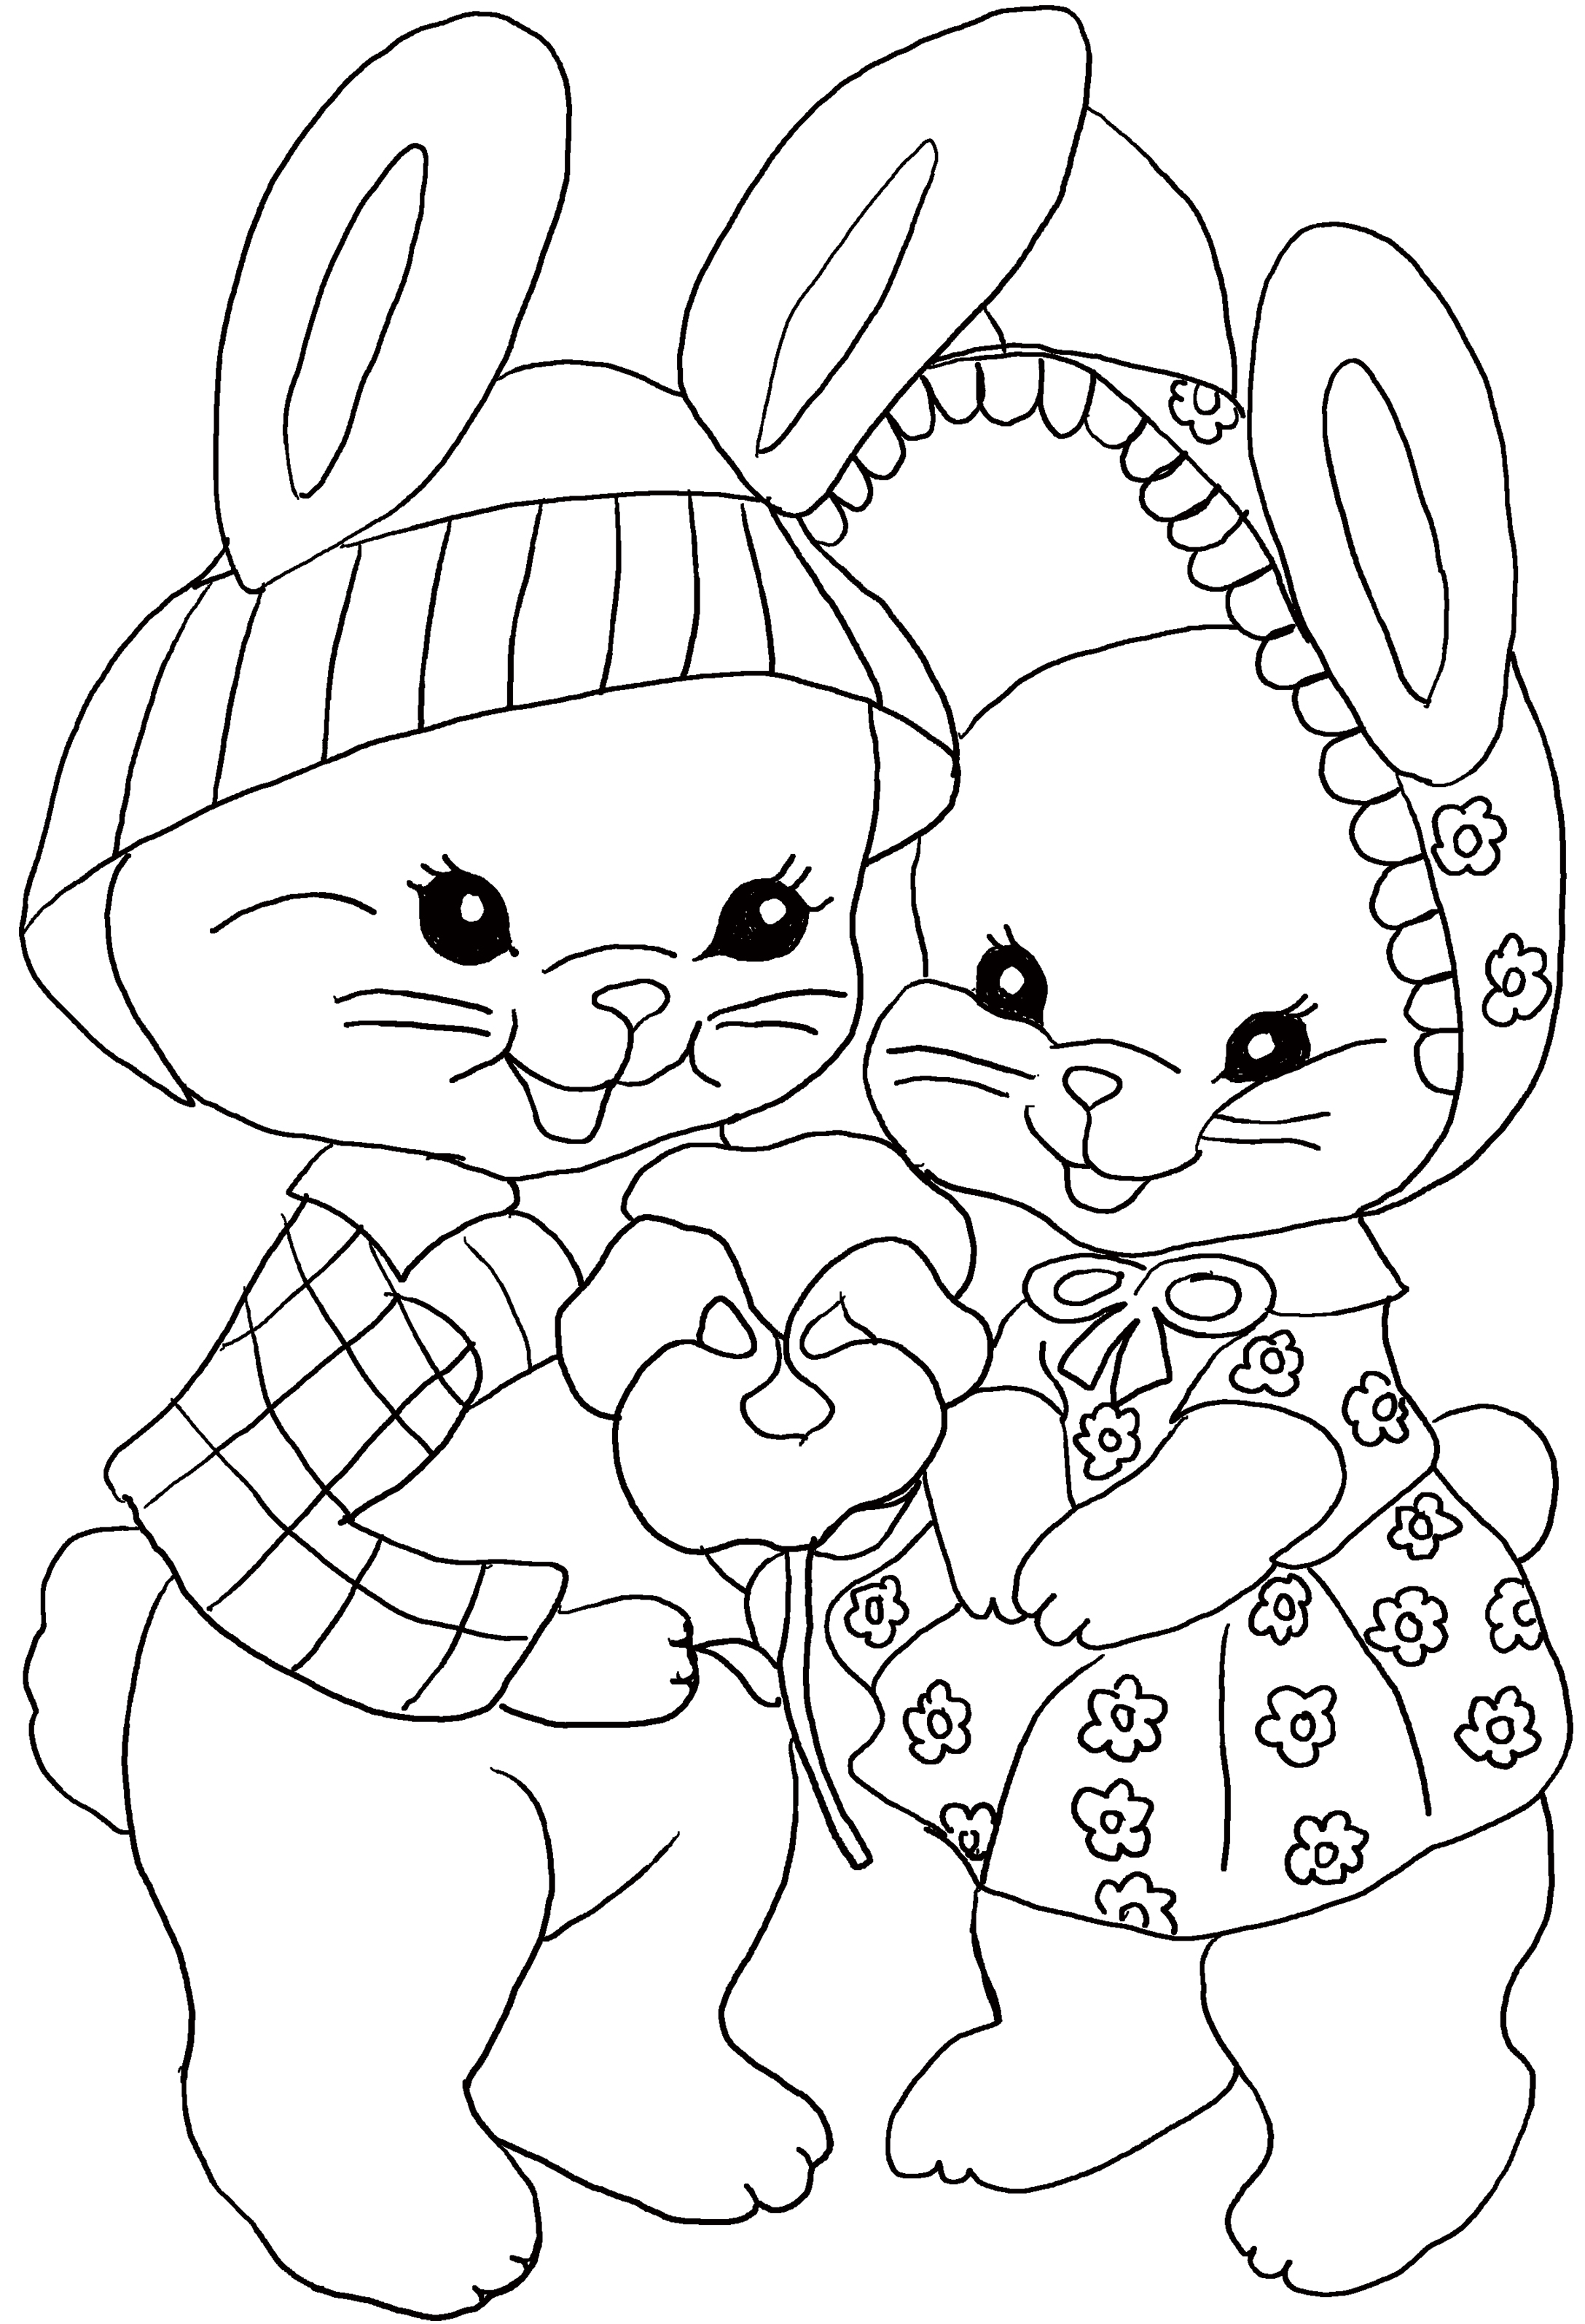 kids easter colouring pages free easter coloring pages for kids high printing quality easter kids pages colouring